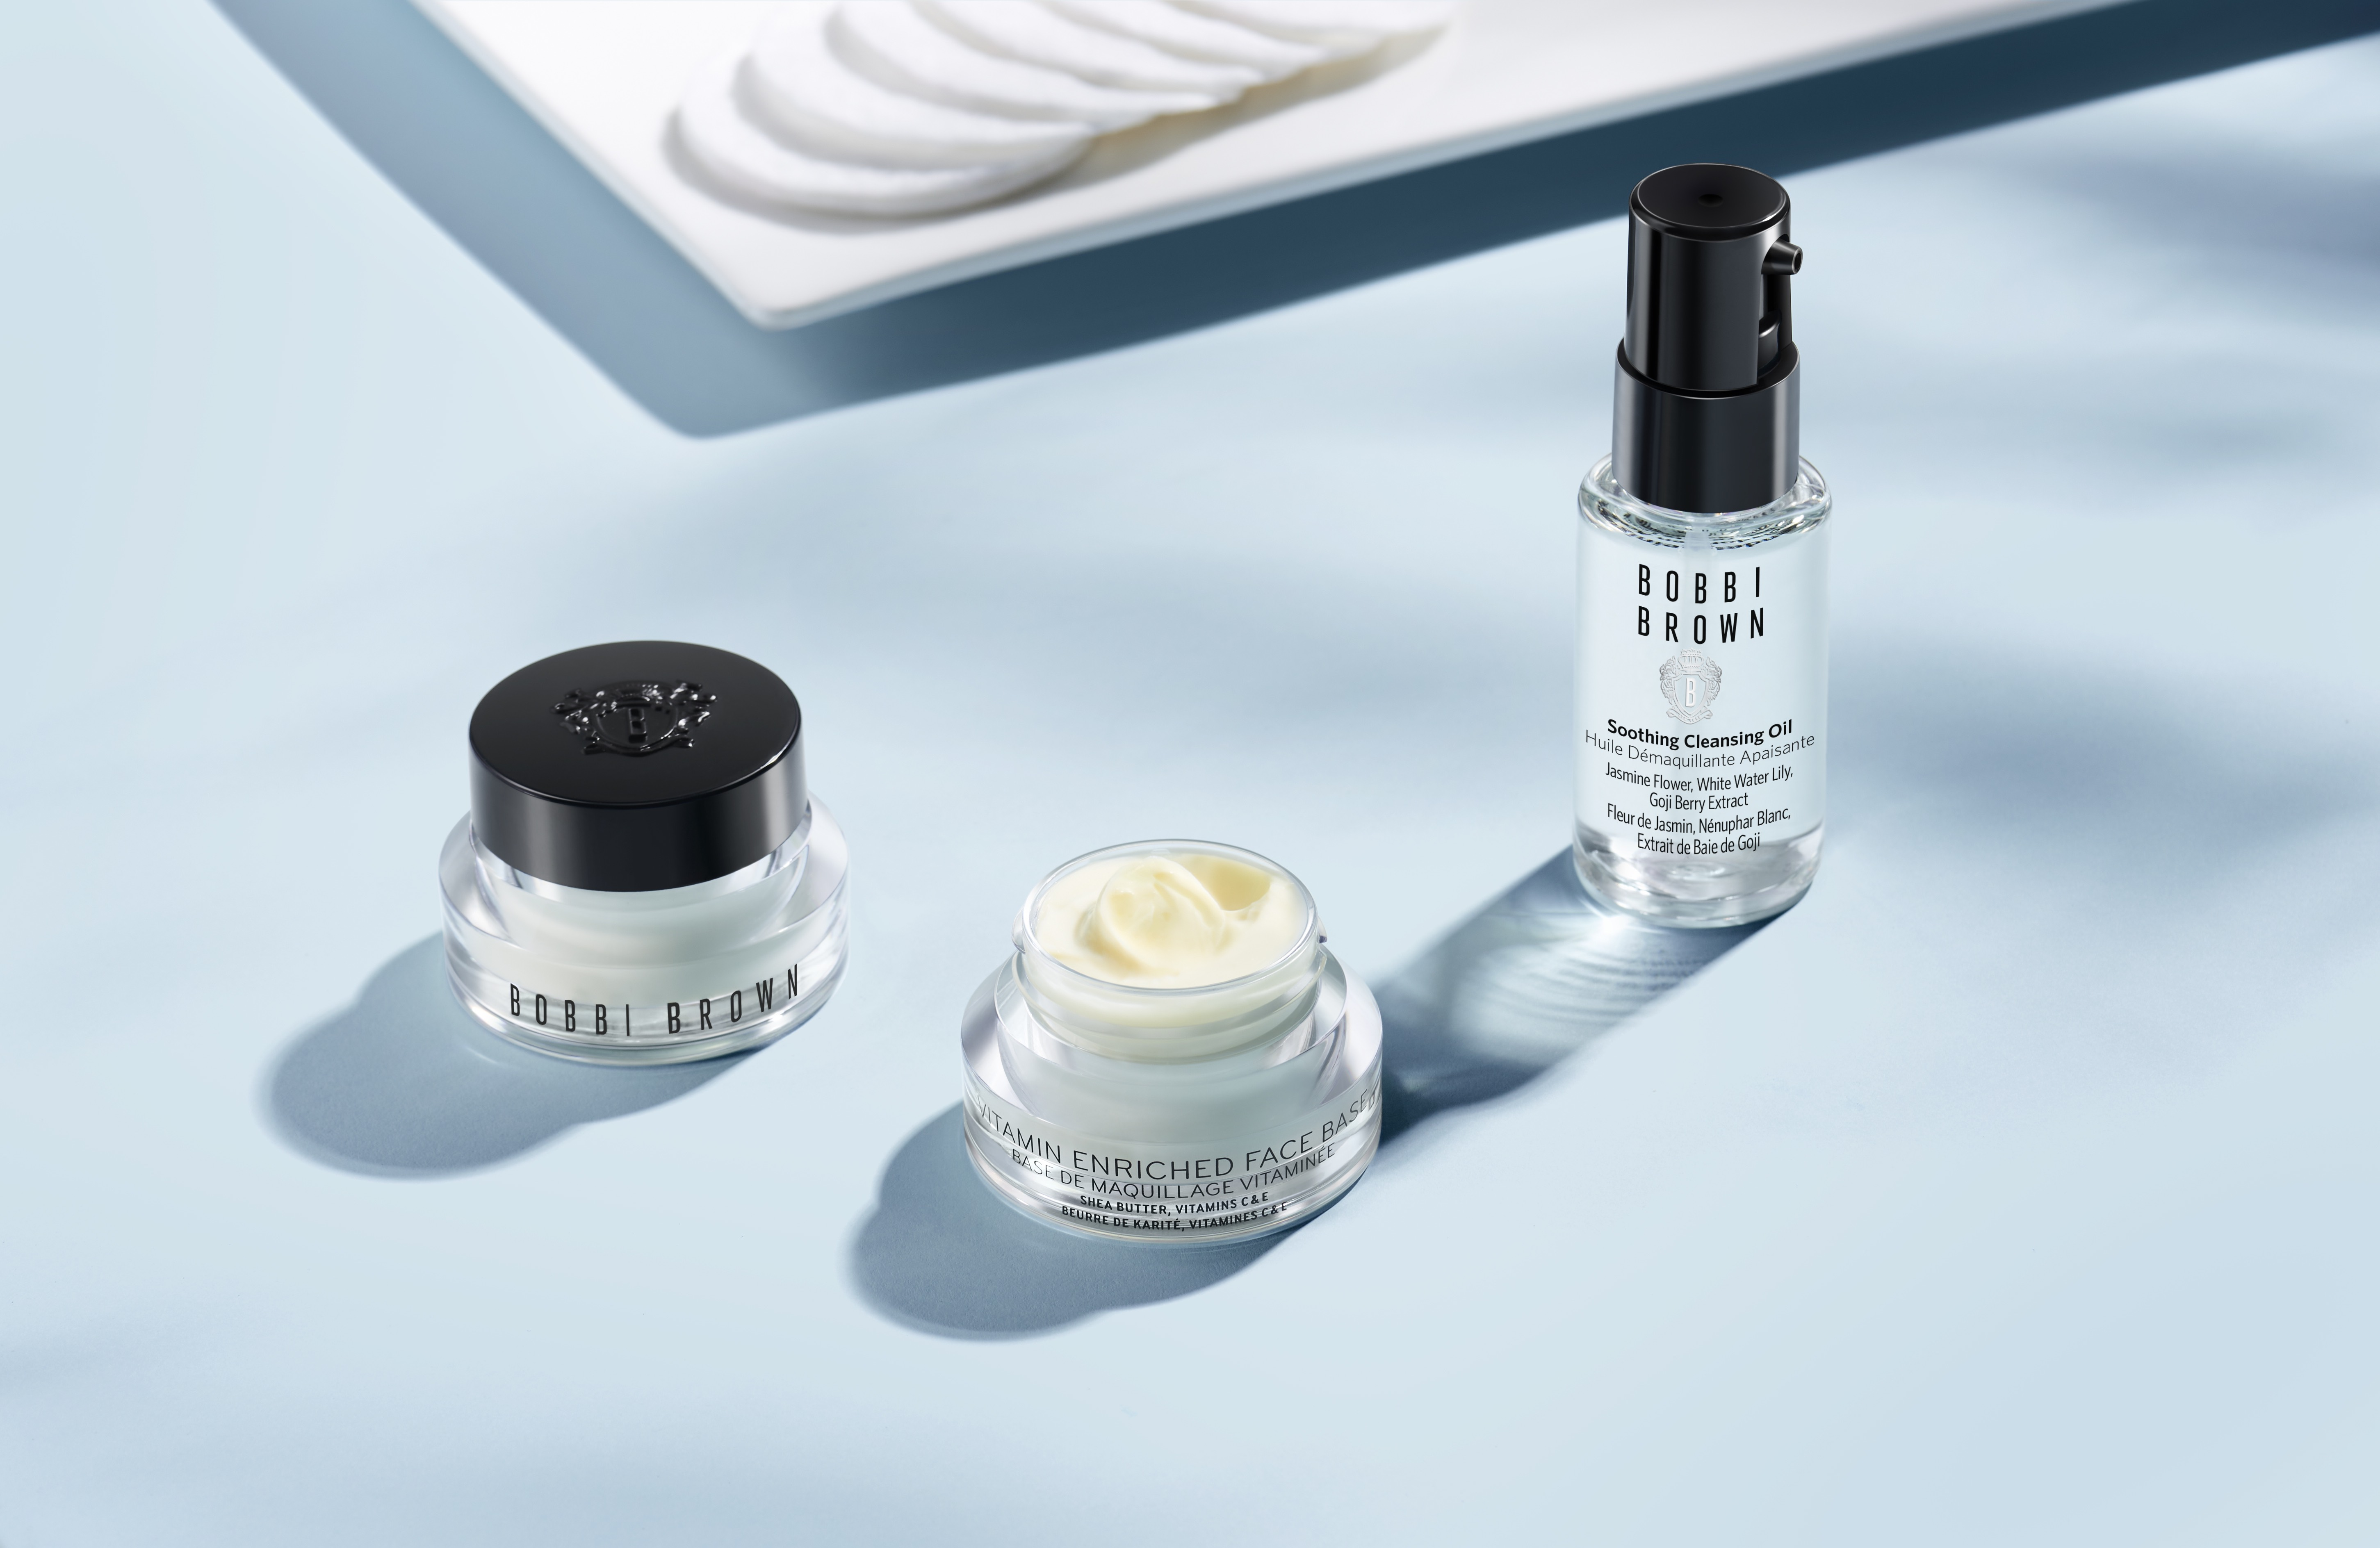 bobbi-brown-minis-collection-vitamin-enriched-face-base